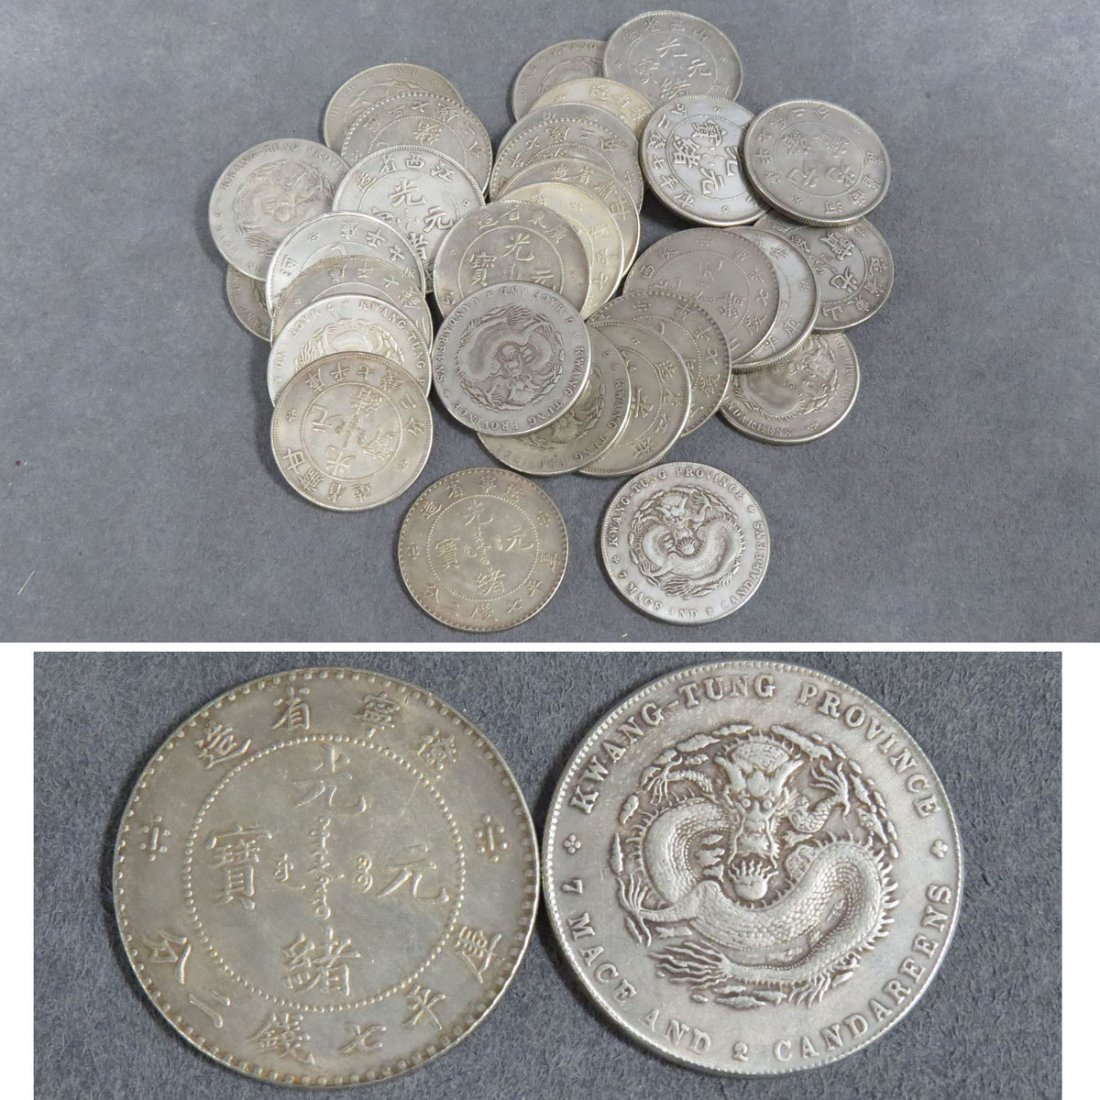 LOT (30) CHINESE KWANG-TUNG PROVINCE STYLE COINS